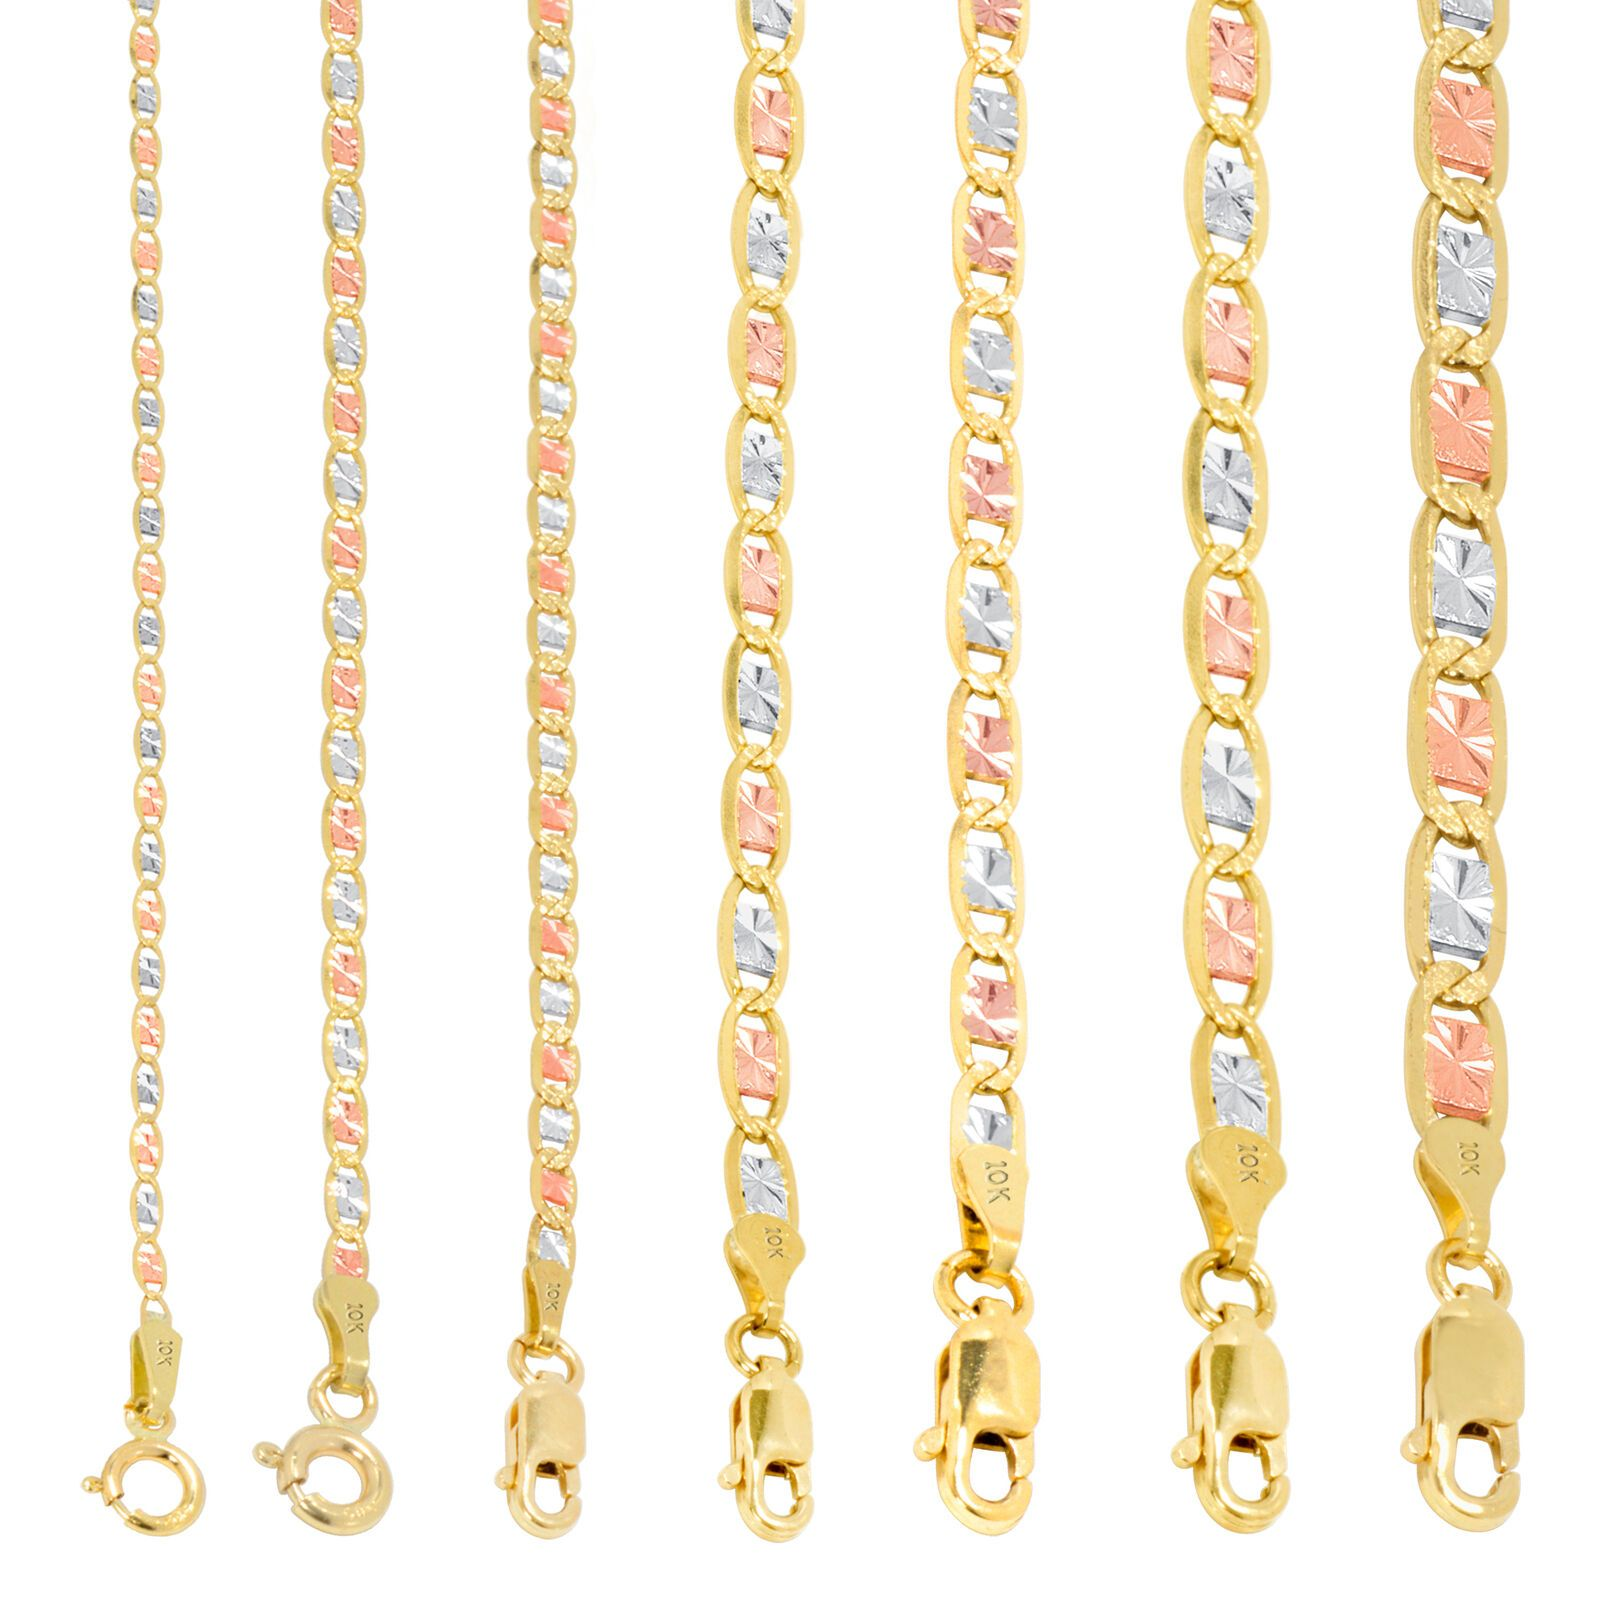 10k Gold Solid Tri Yellow Rose White 1 5mm 6mm Valentino Chain Necklace 16 30 In 2020